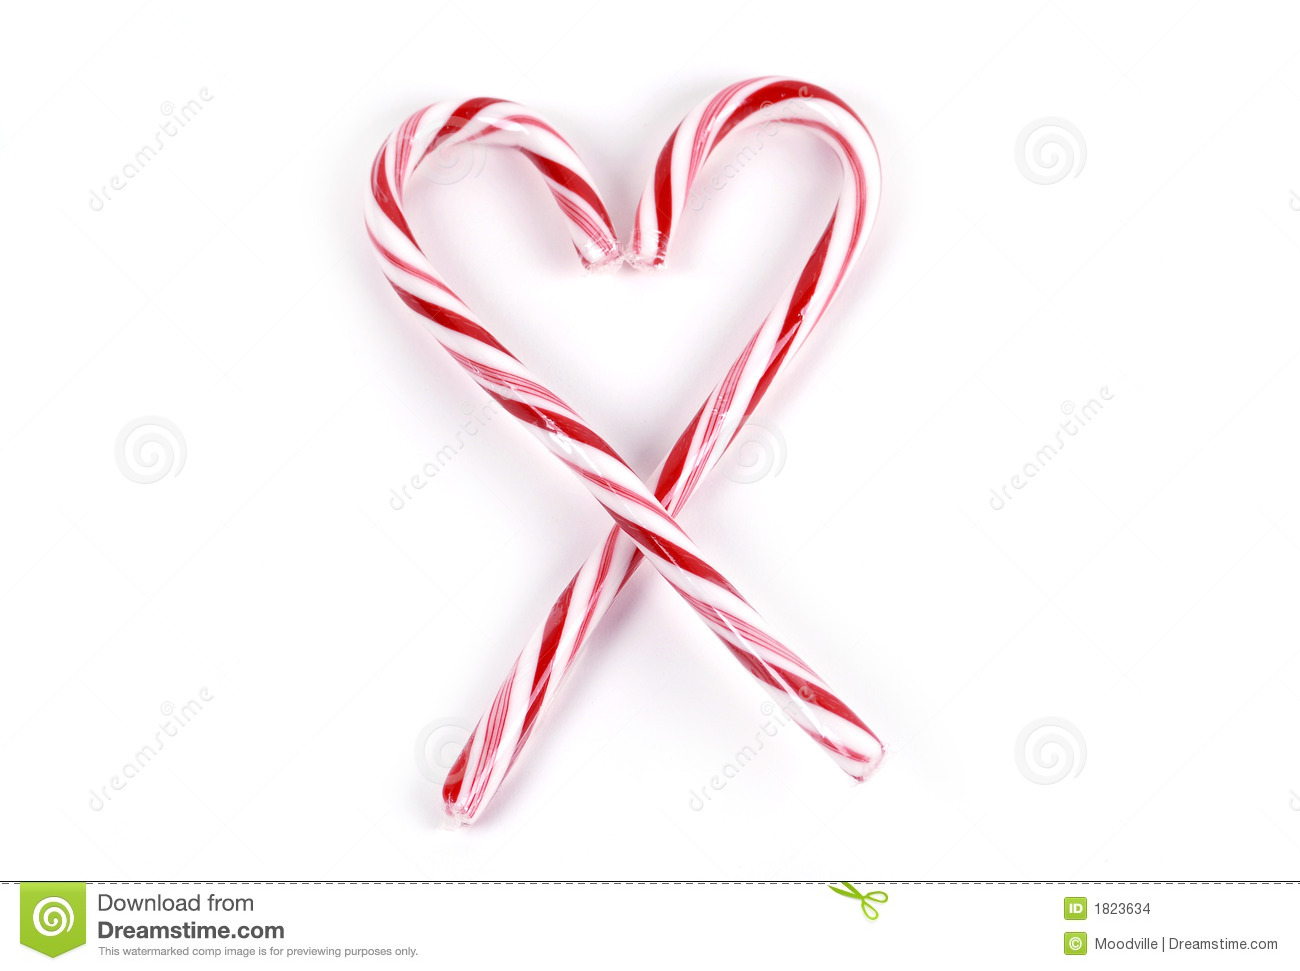 Food candy cane heart stock photo image of treat